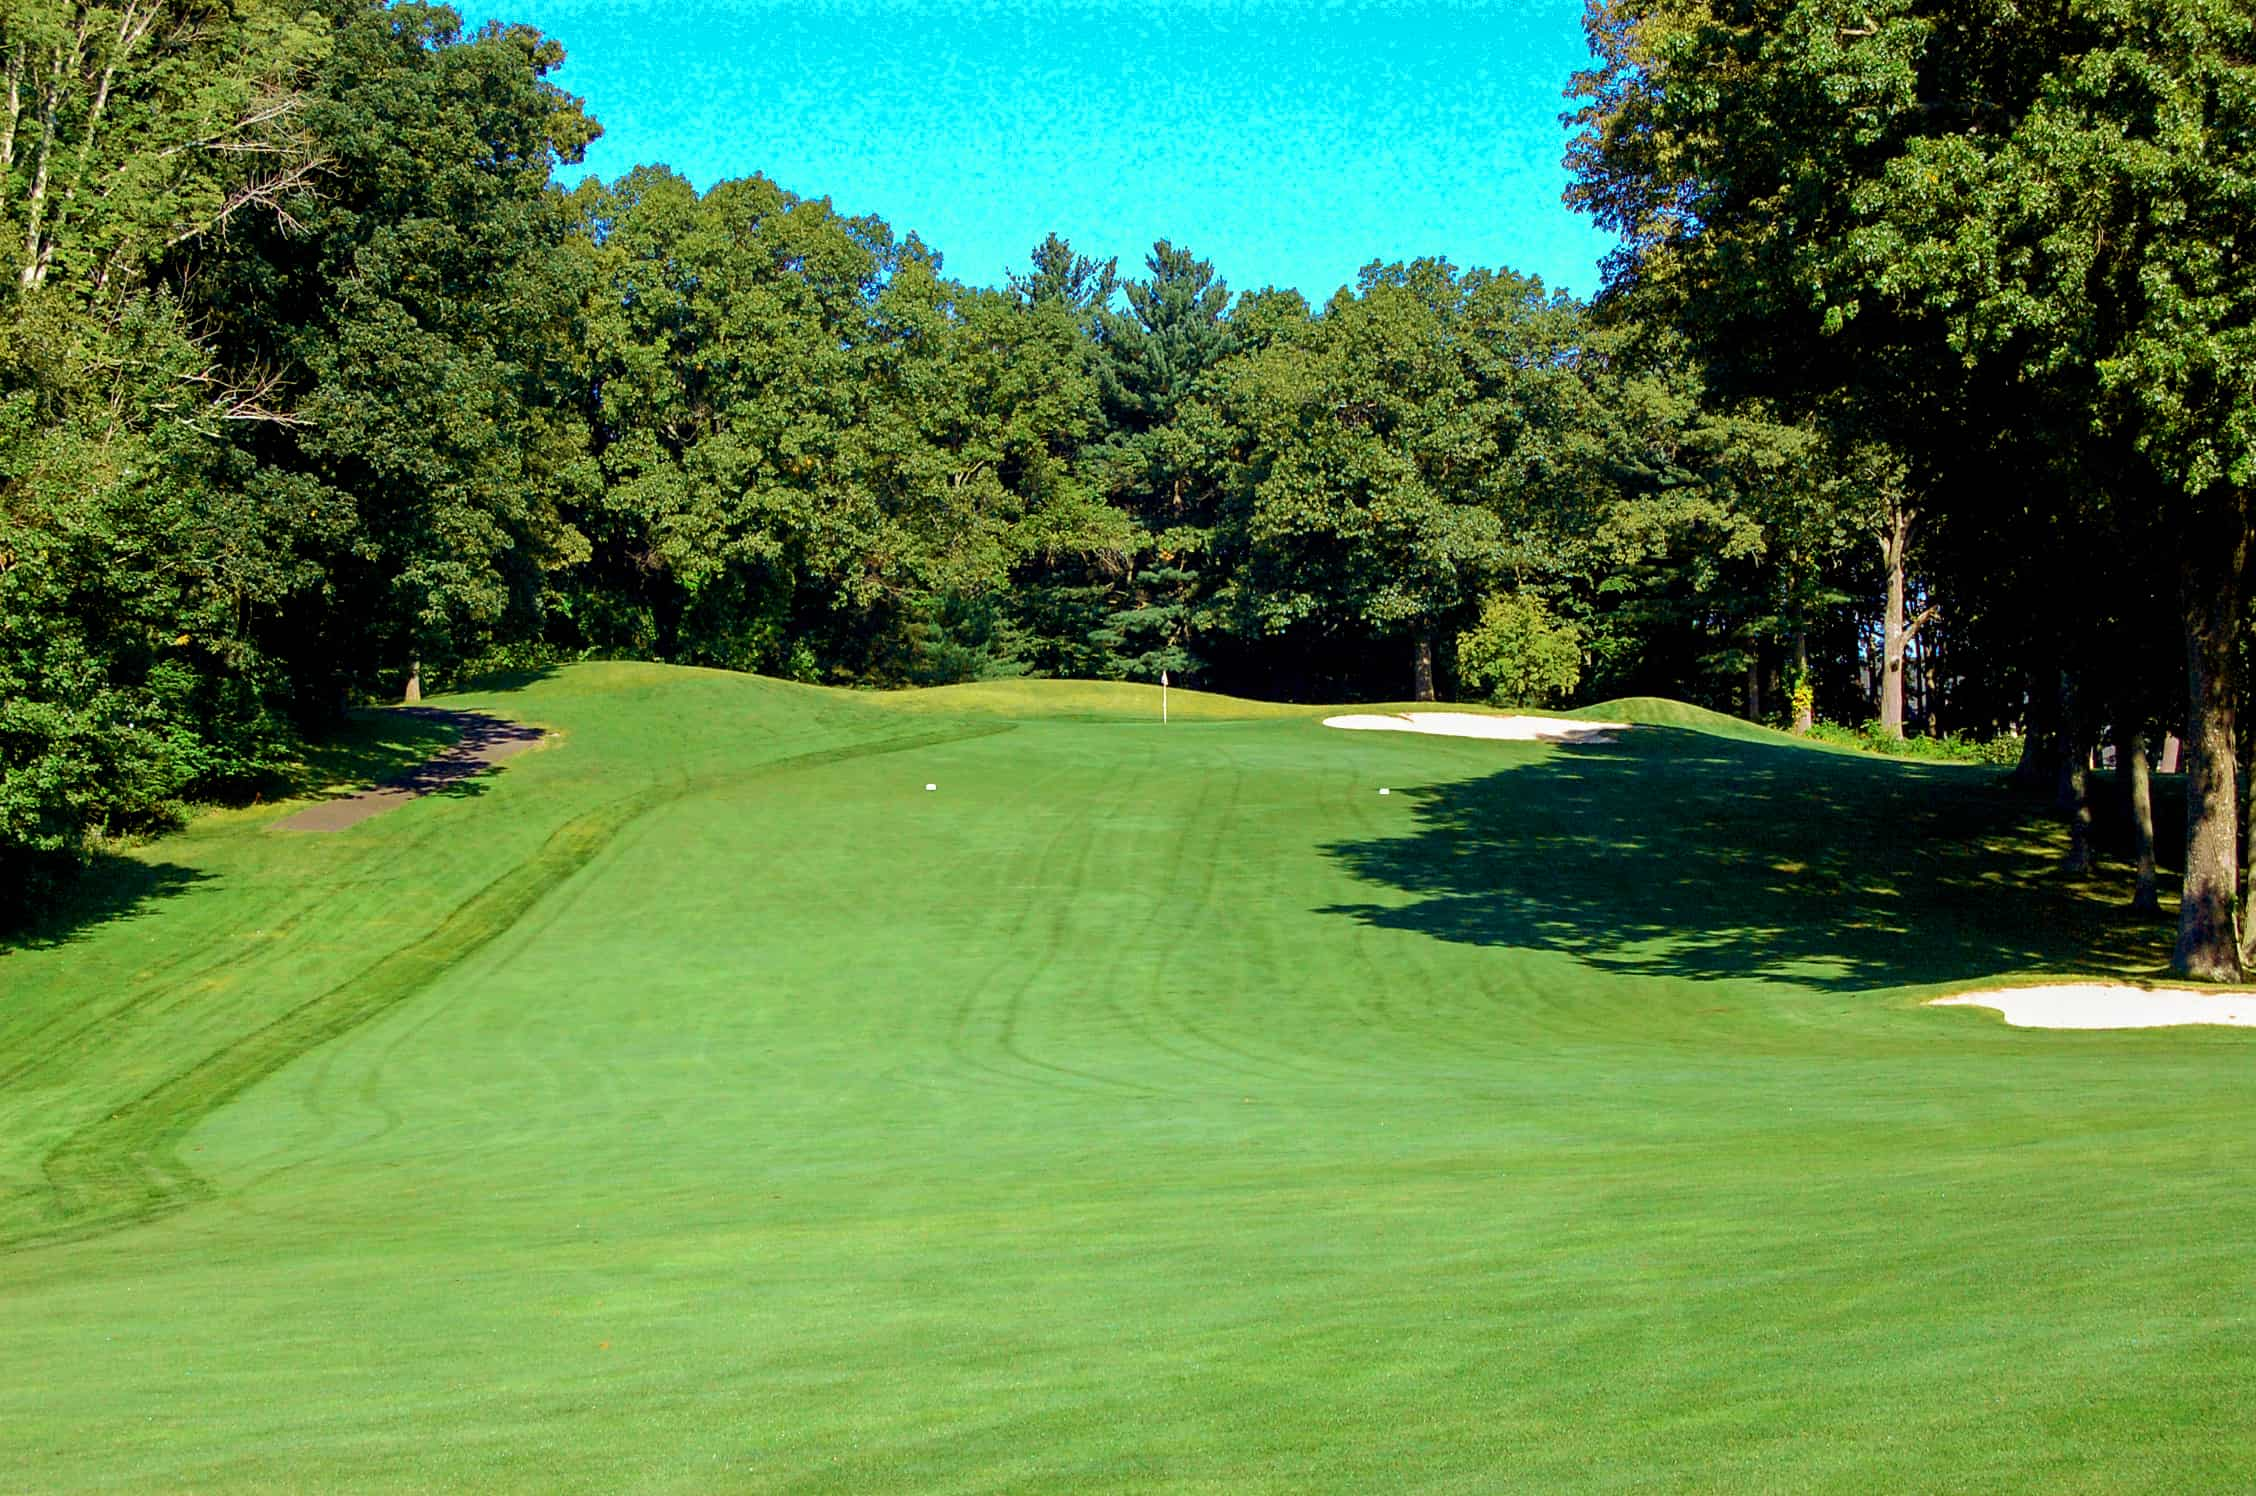 13th fairway to green pleasant valley country club